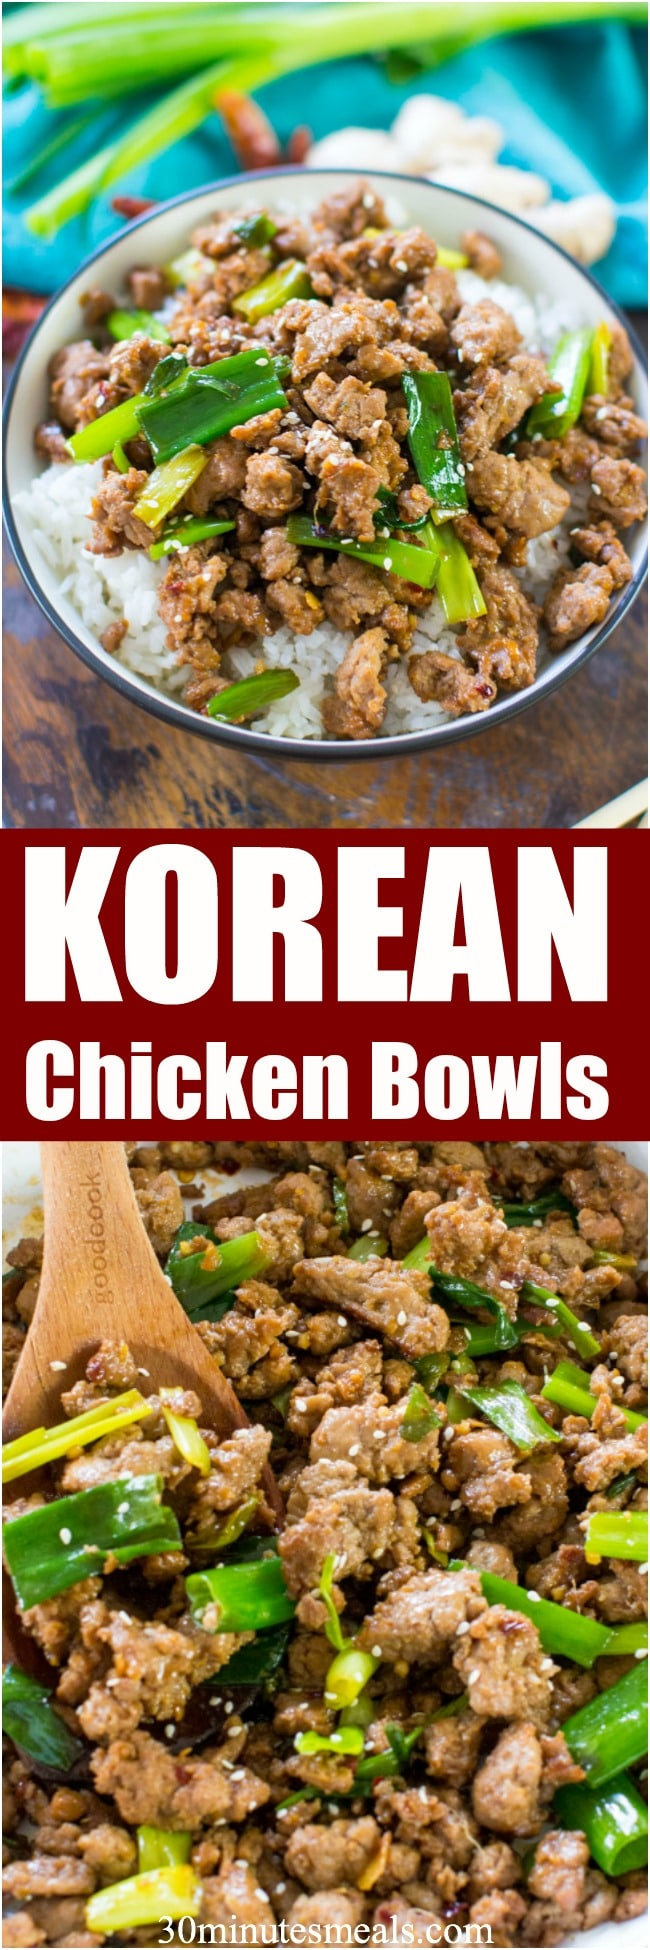 Korean Chicken Bowls are one of the easiest and tastiest dishes you can make in just under 20 minutes. Made in one pan with budget friendly ingredients.